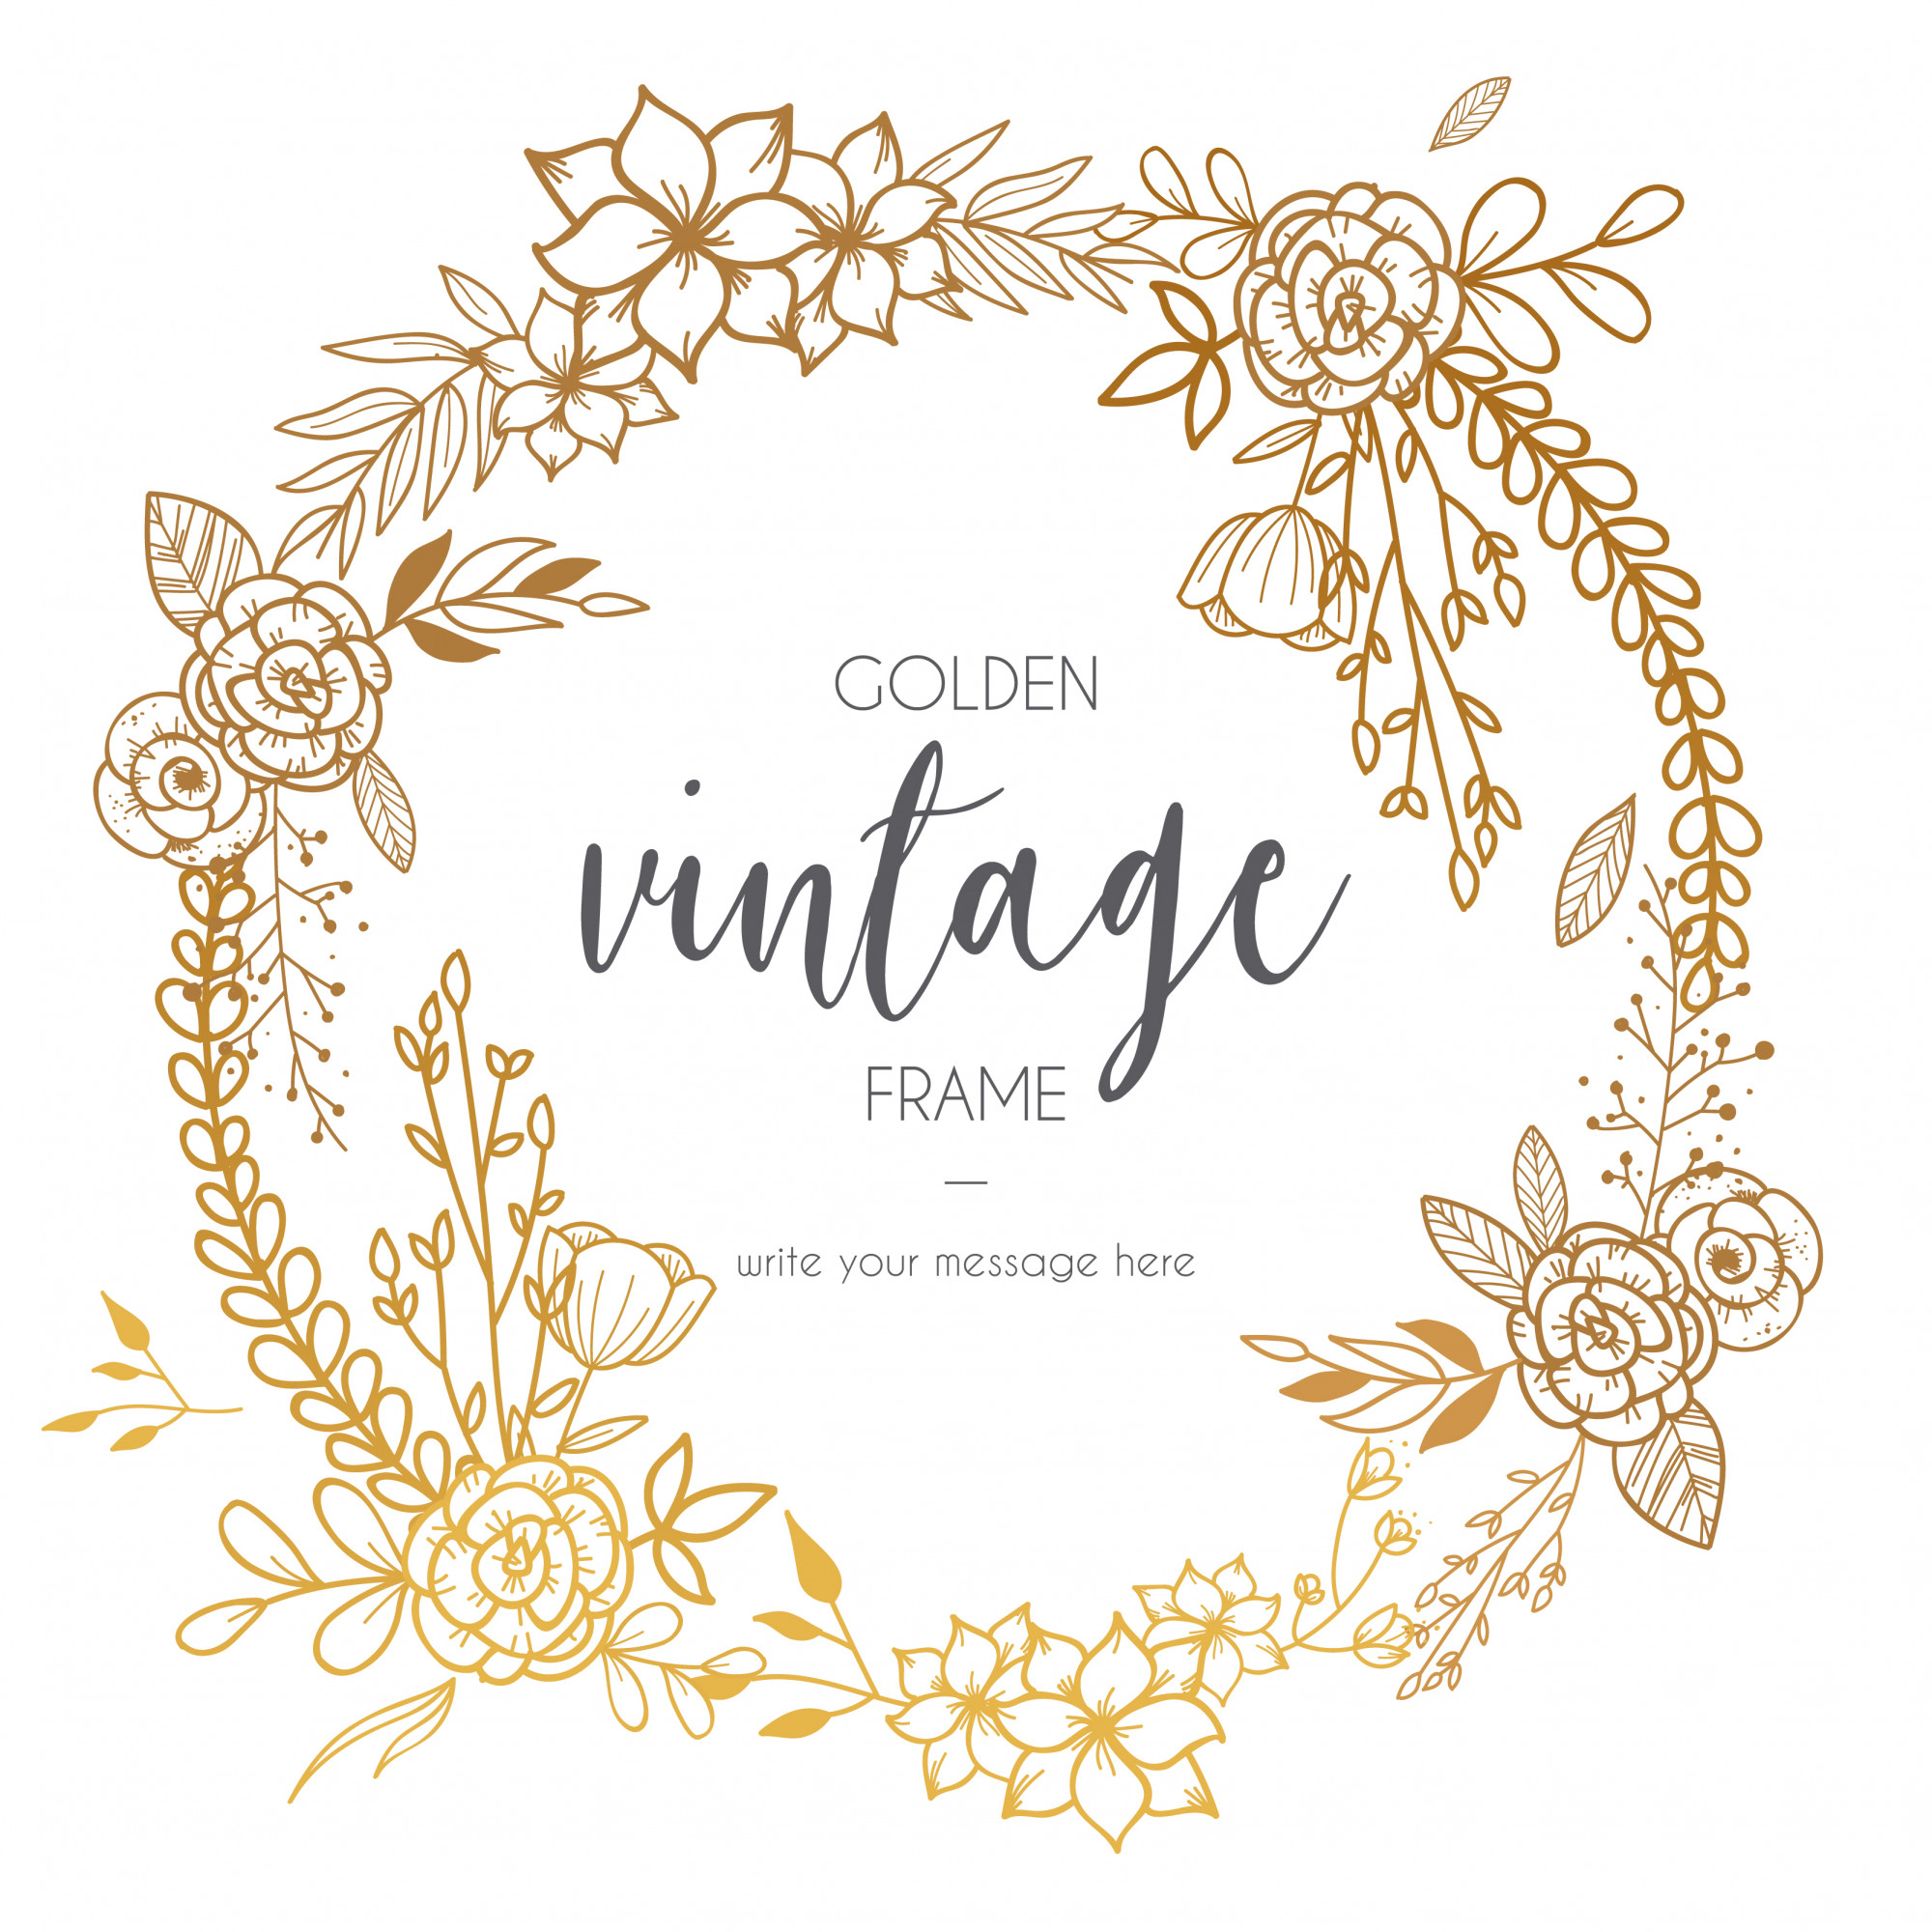 Golden Vintage Frame with Flowers